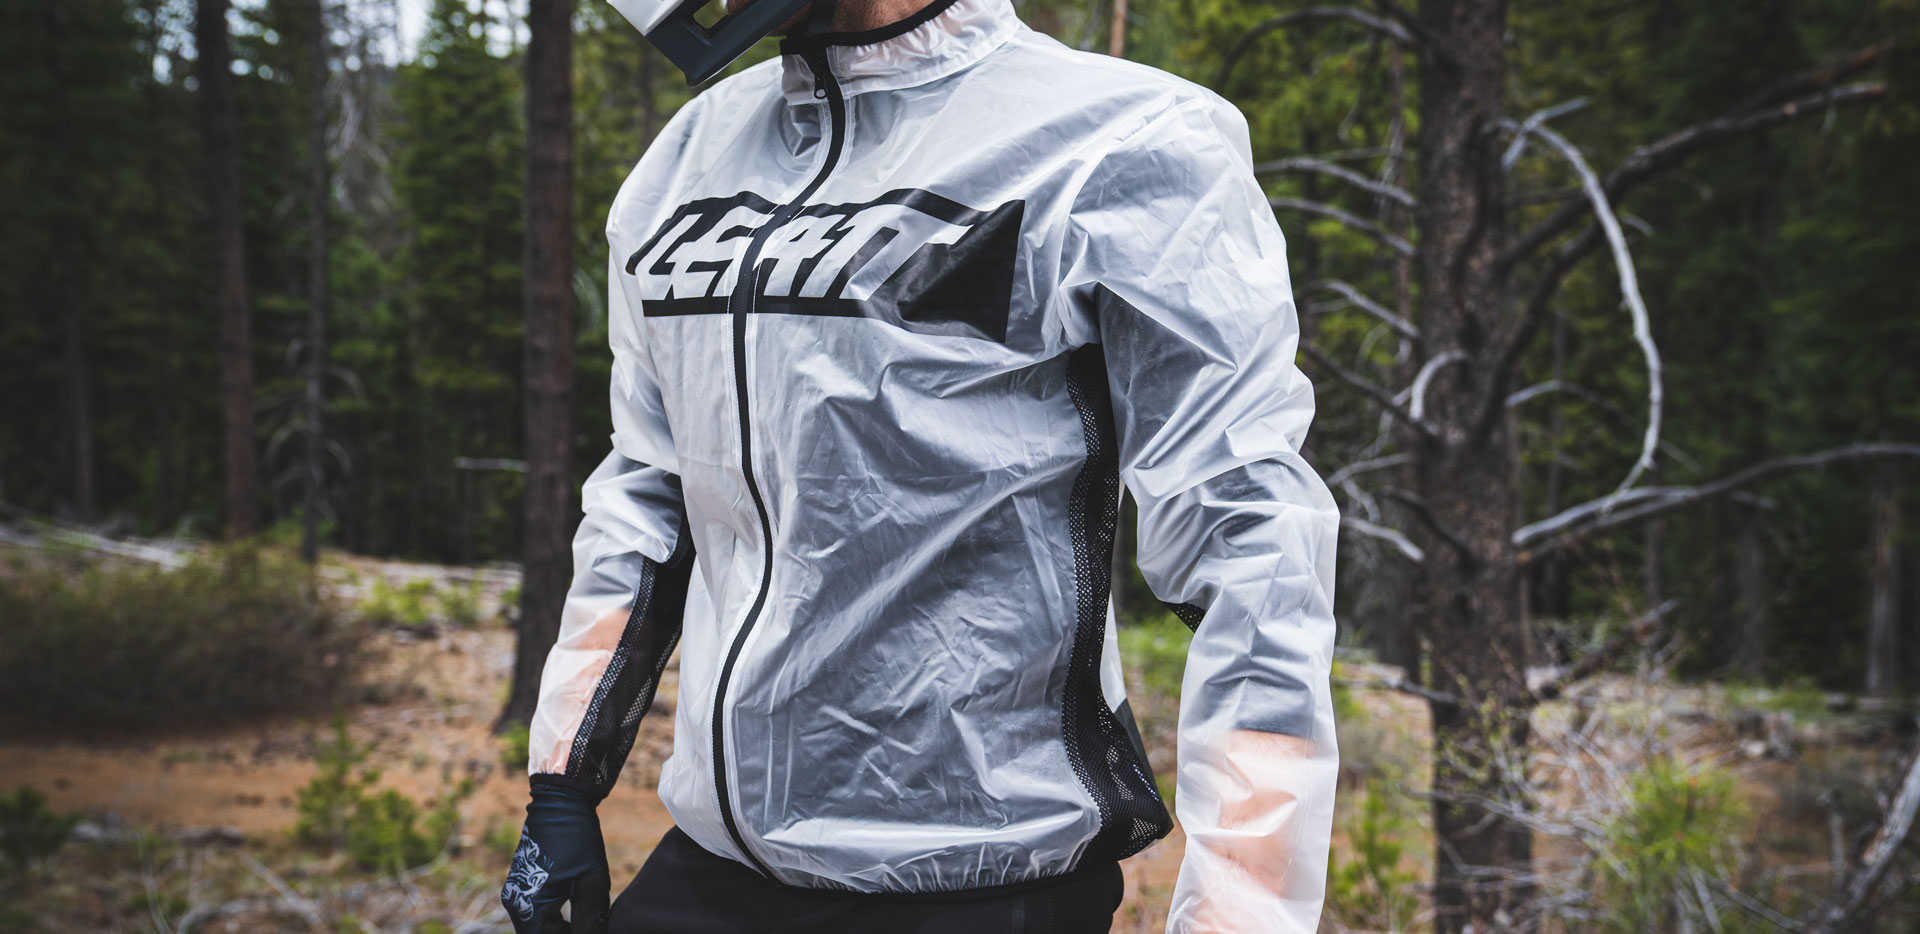 Leatt Race Cover Jacket Review